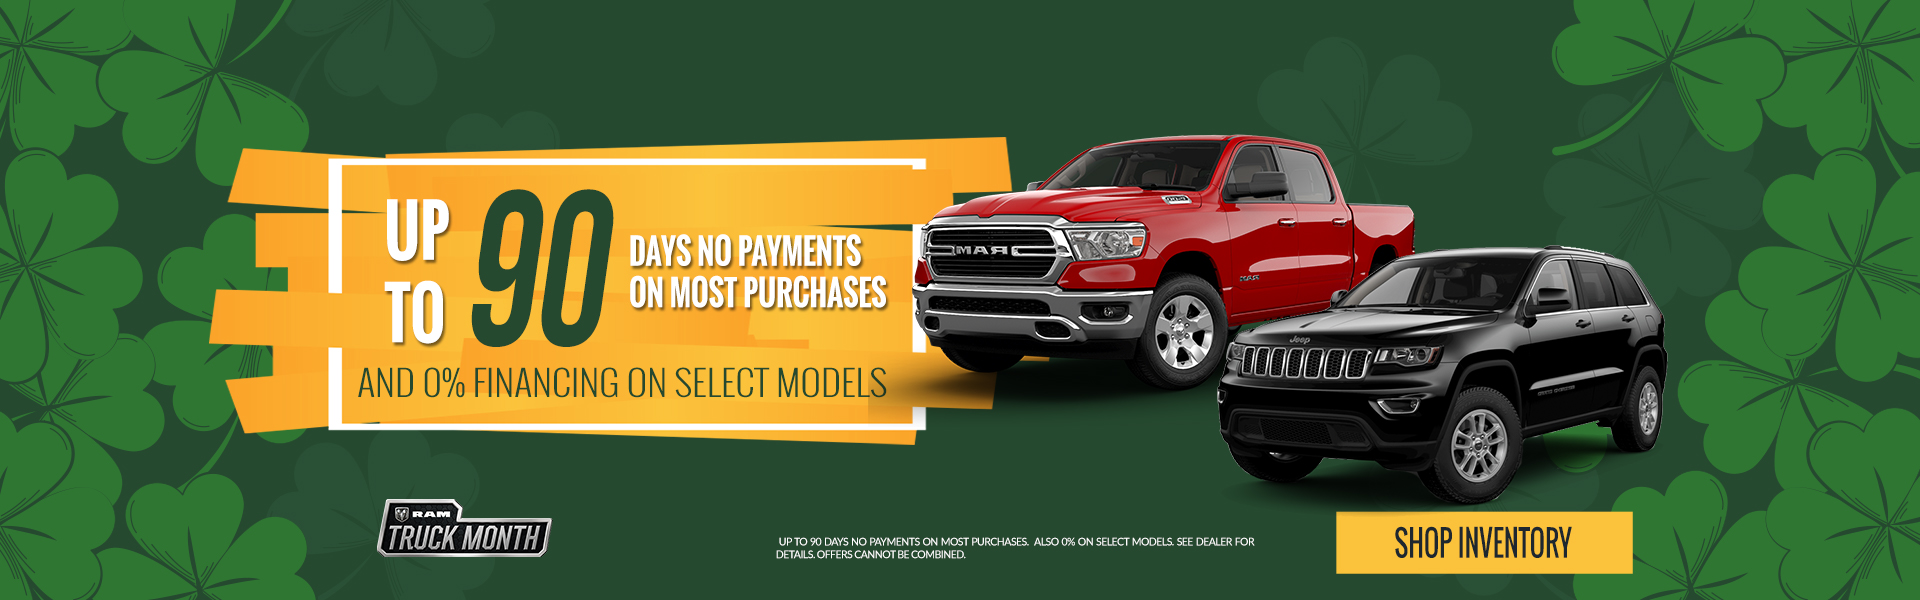 up to 90 days no payments on most purchases.  Also 0% on select models.